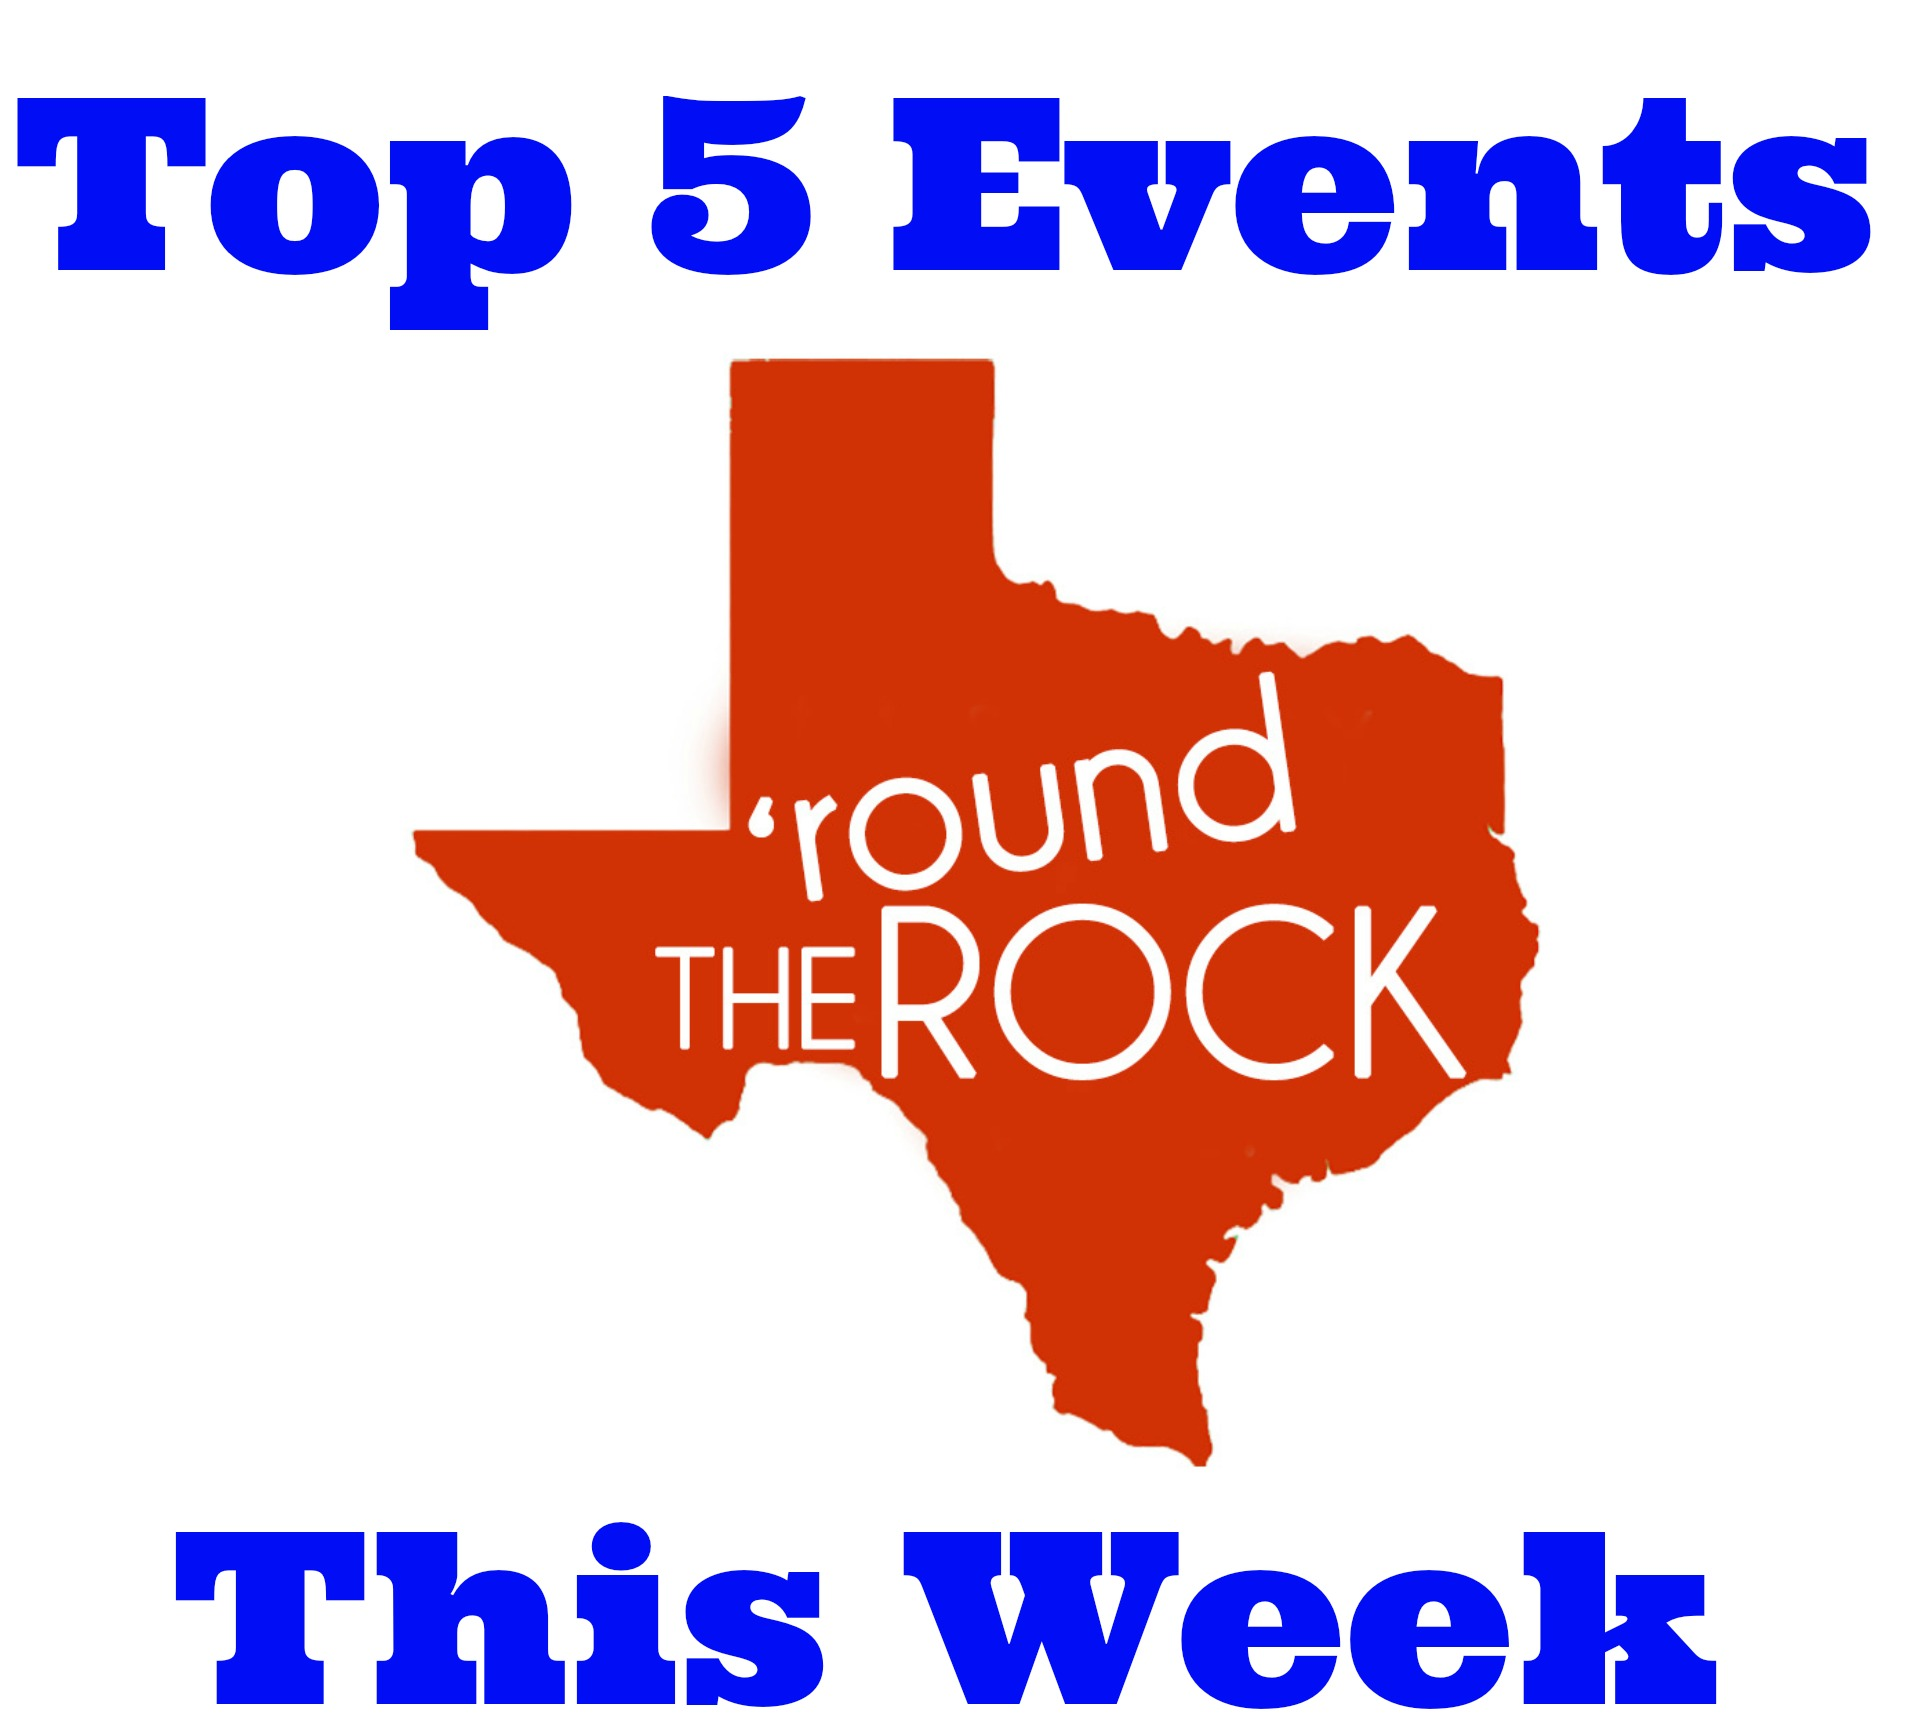 Top 5 RTR Events